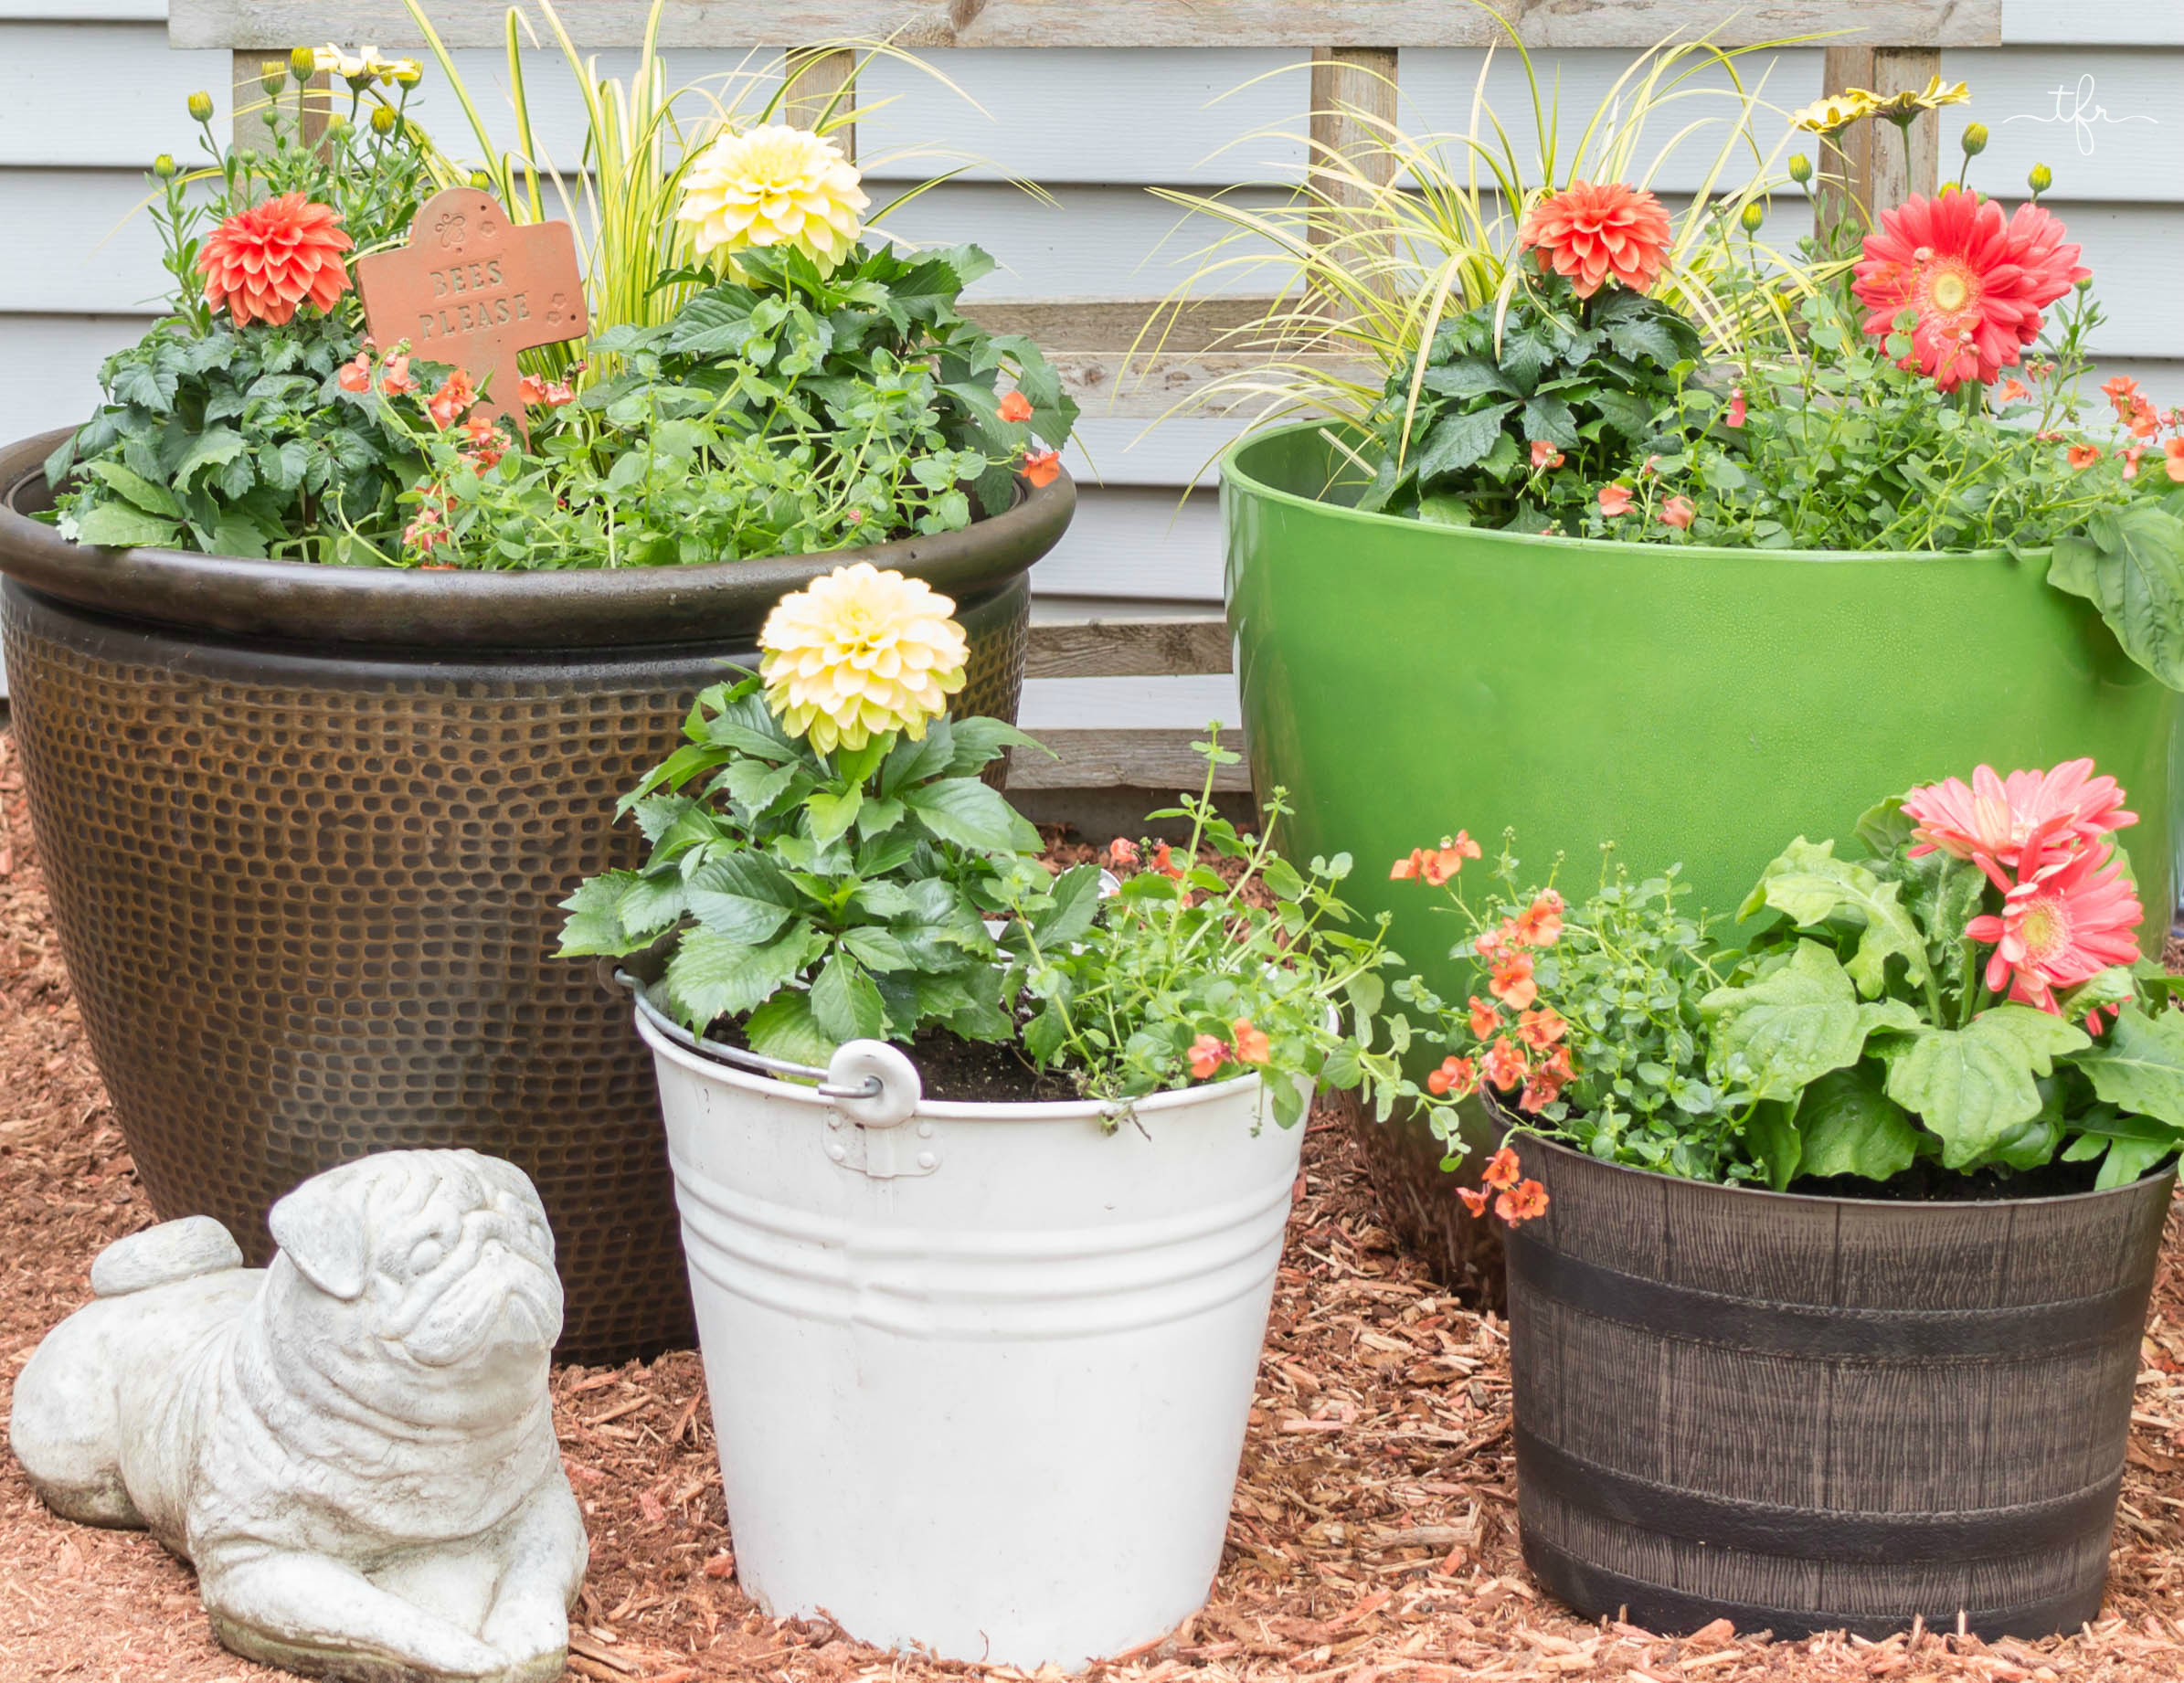 I received inspiration for my container project by visiting Monrovia's Grow Beautifully blog which is filled with great how-to's and tips. Here are the most important things when creating a container garden.